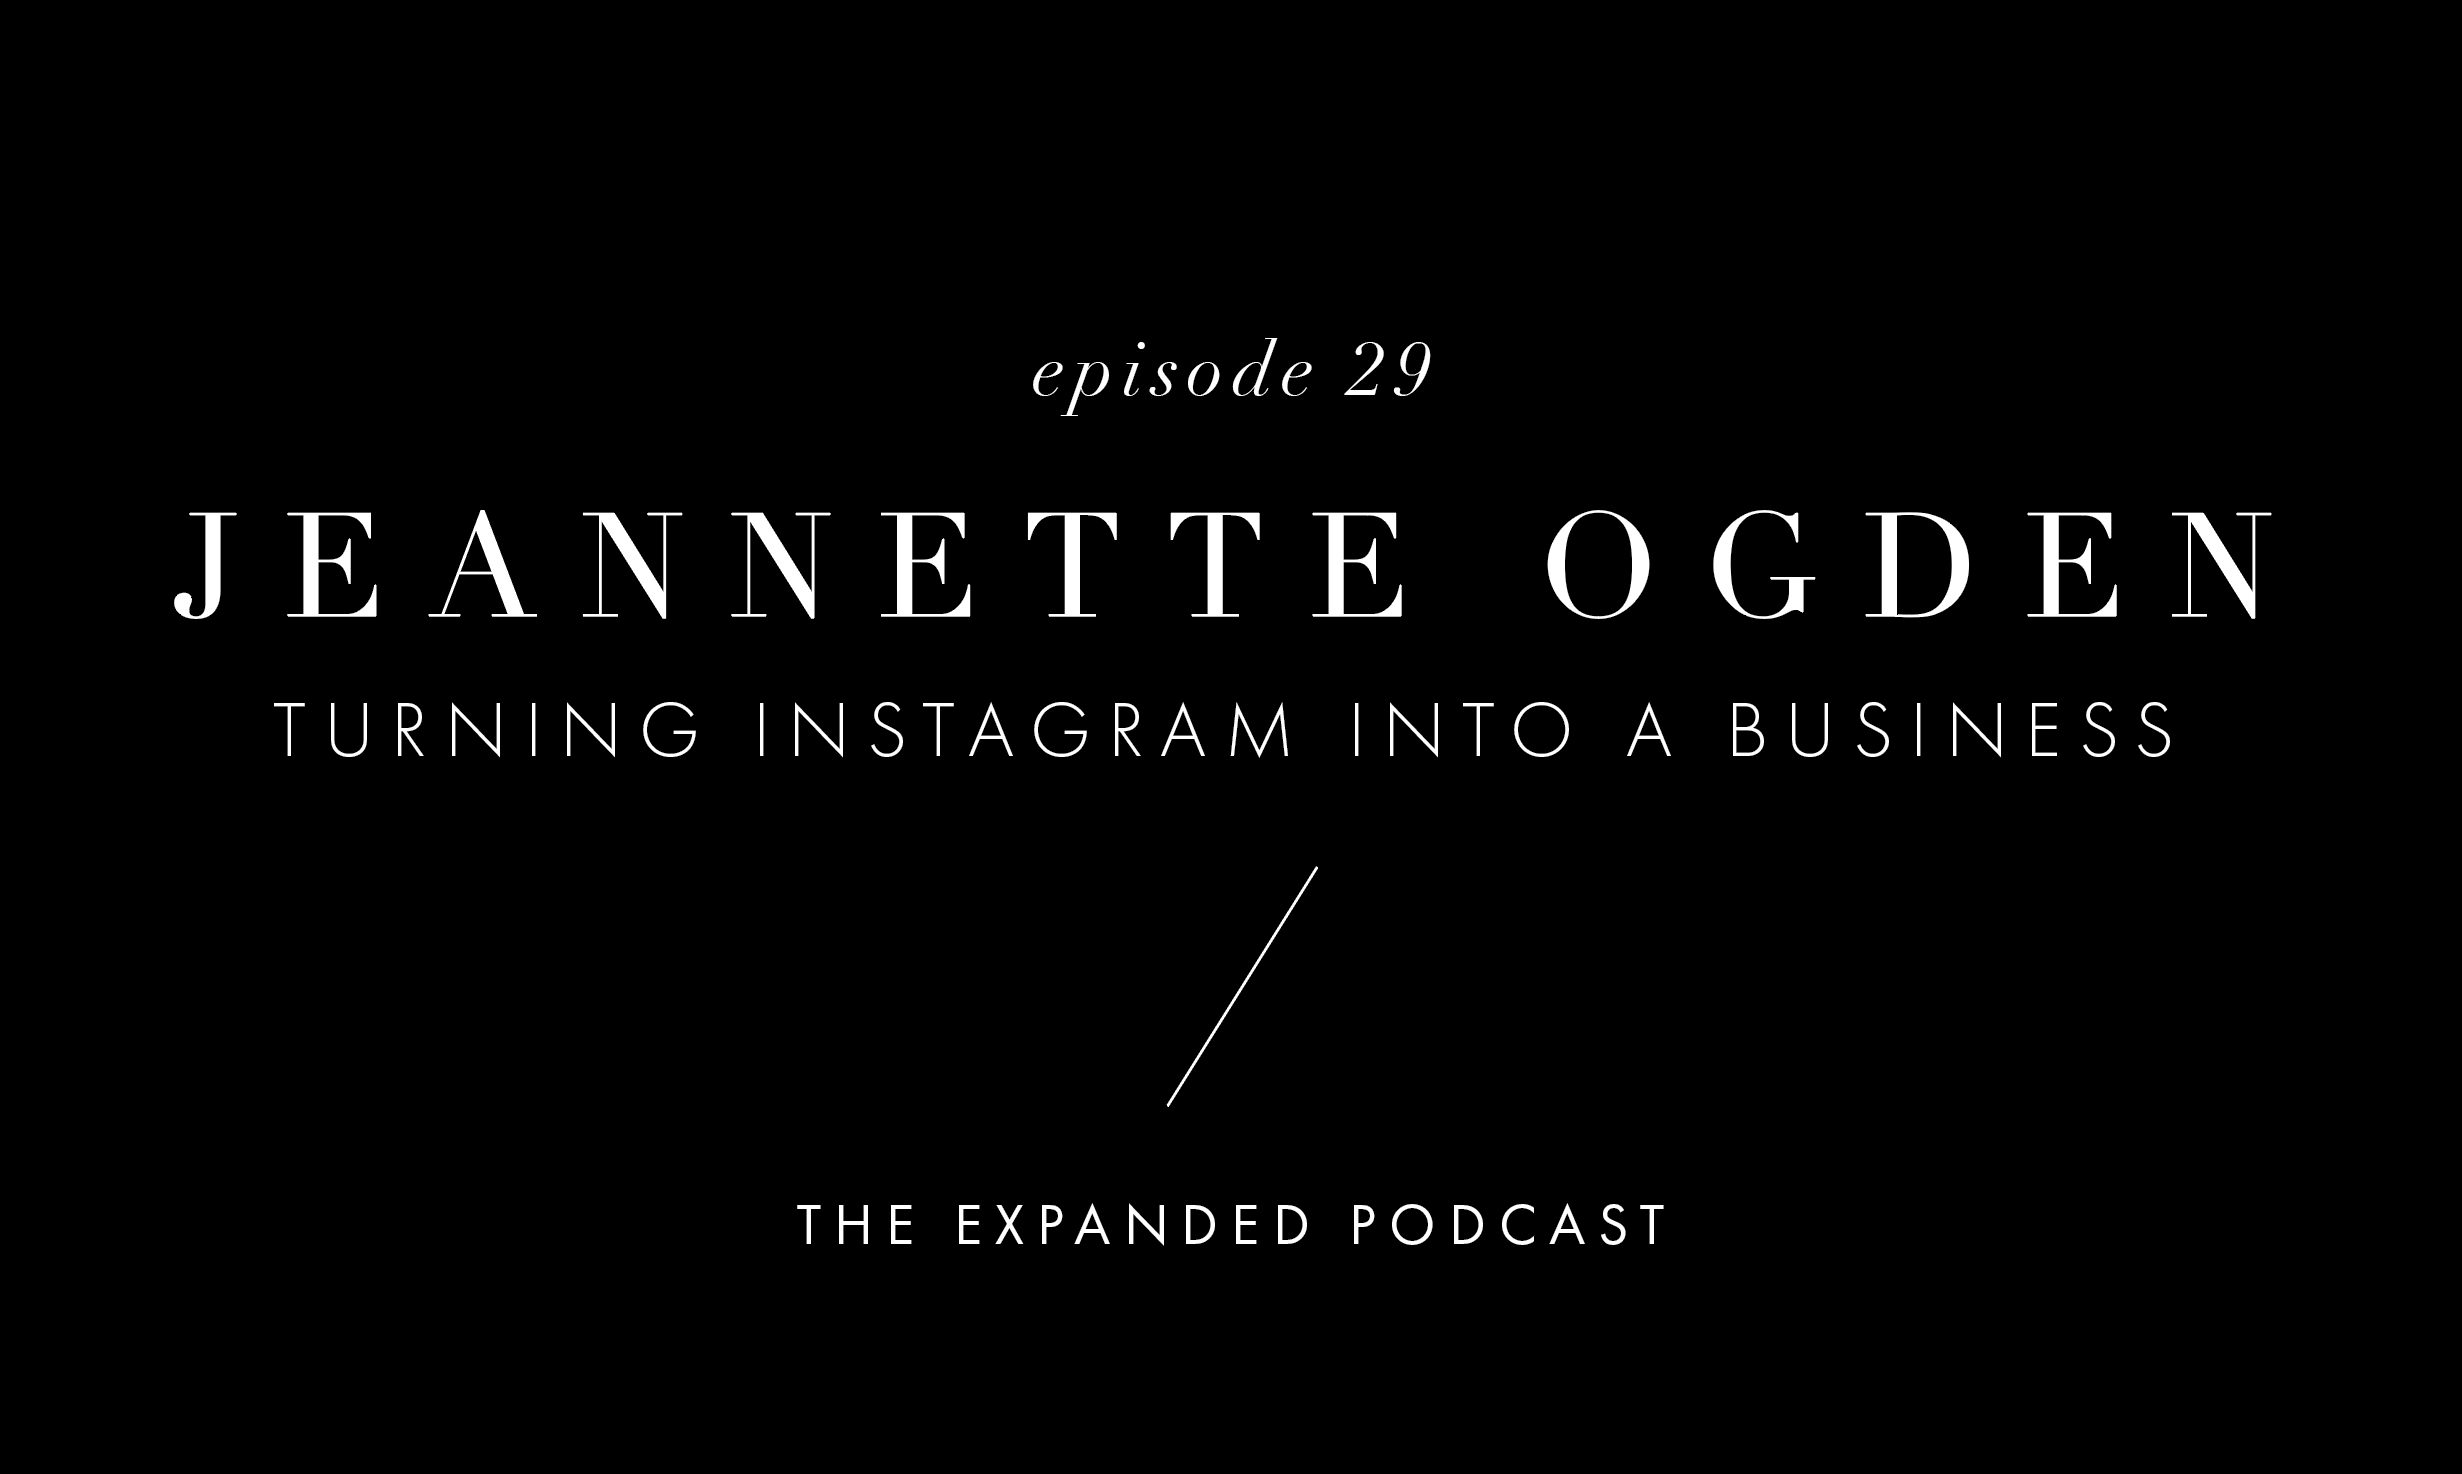 manifesting a business on instagram